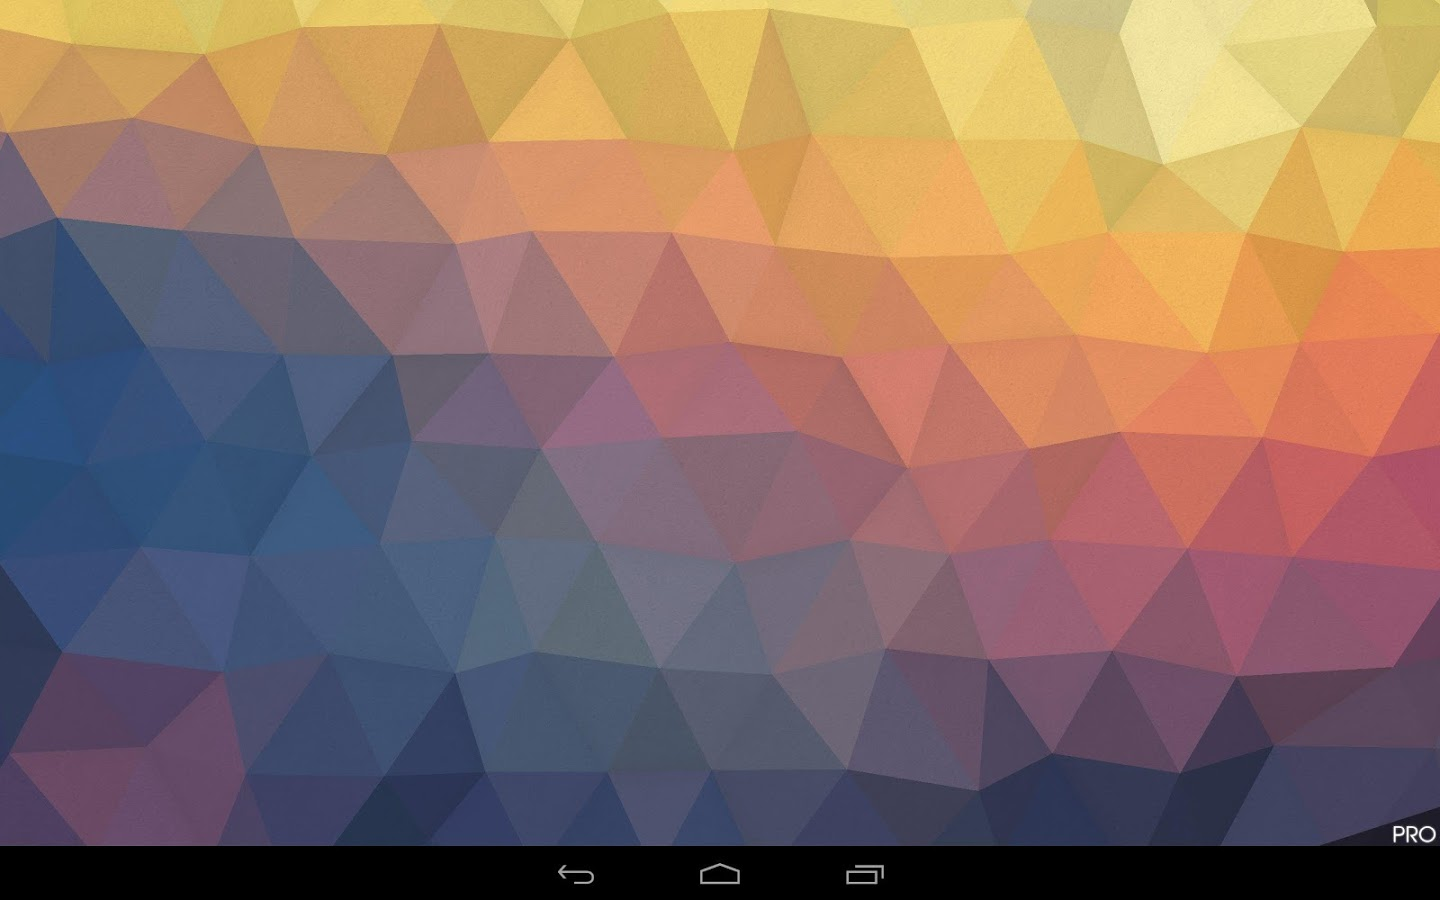 10 cool new Android live wallpapers 1440x900